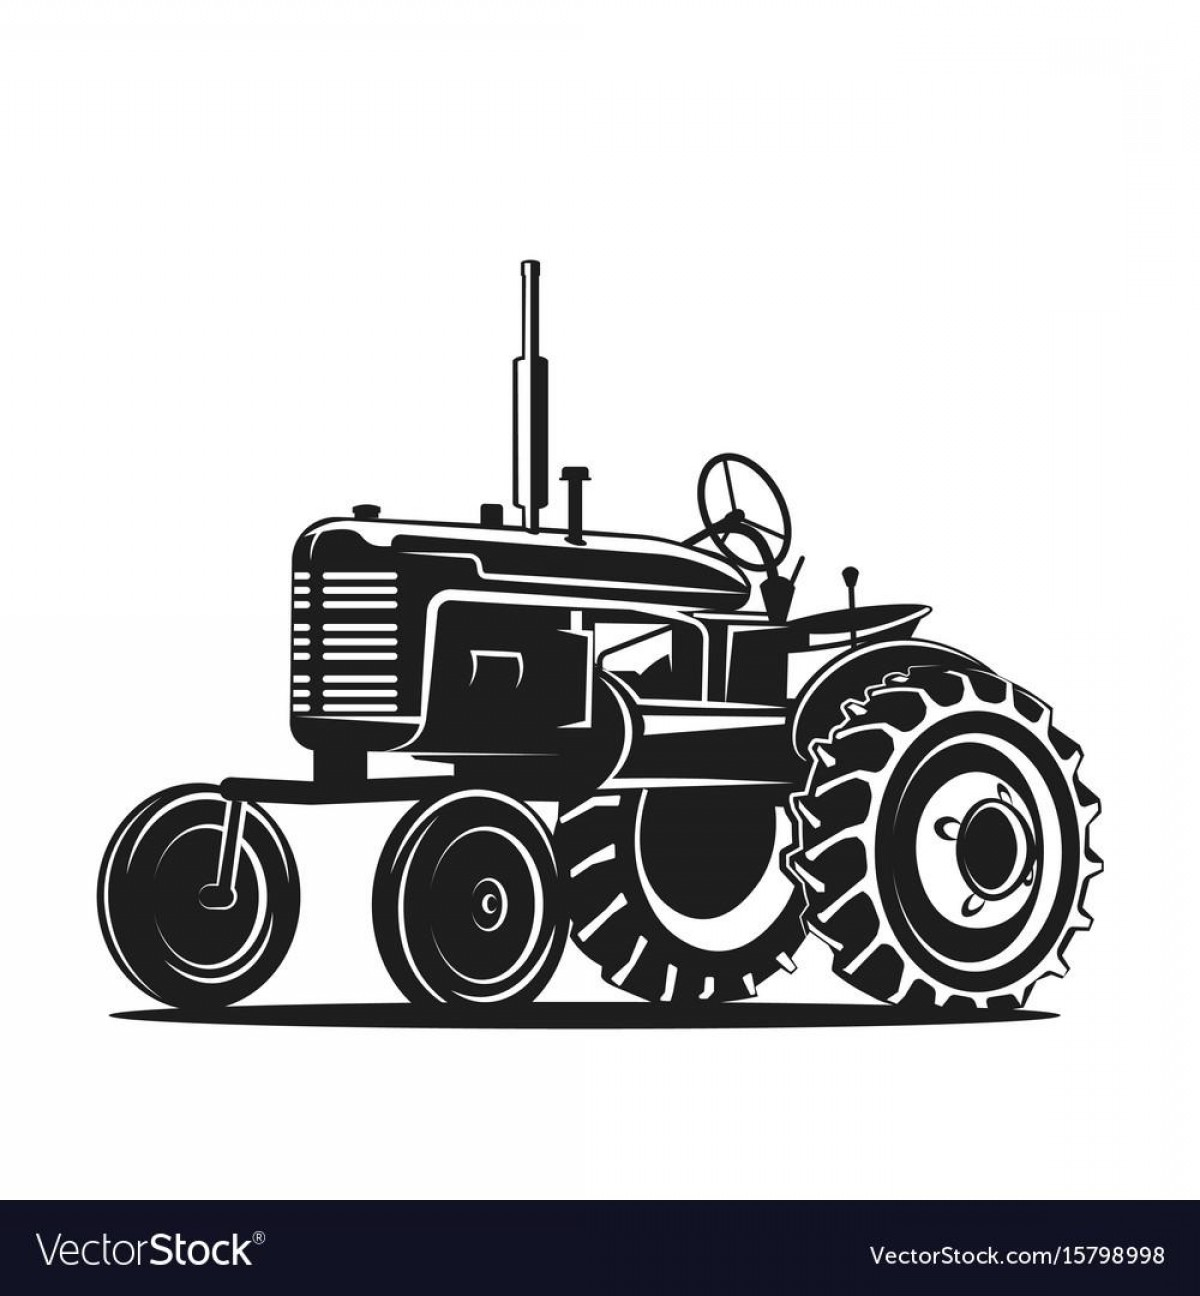 Vintage Tractor Vector Art: Top Black Old Tractor Silhouette On White Background Vector Photos